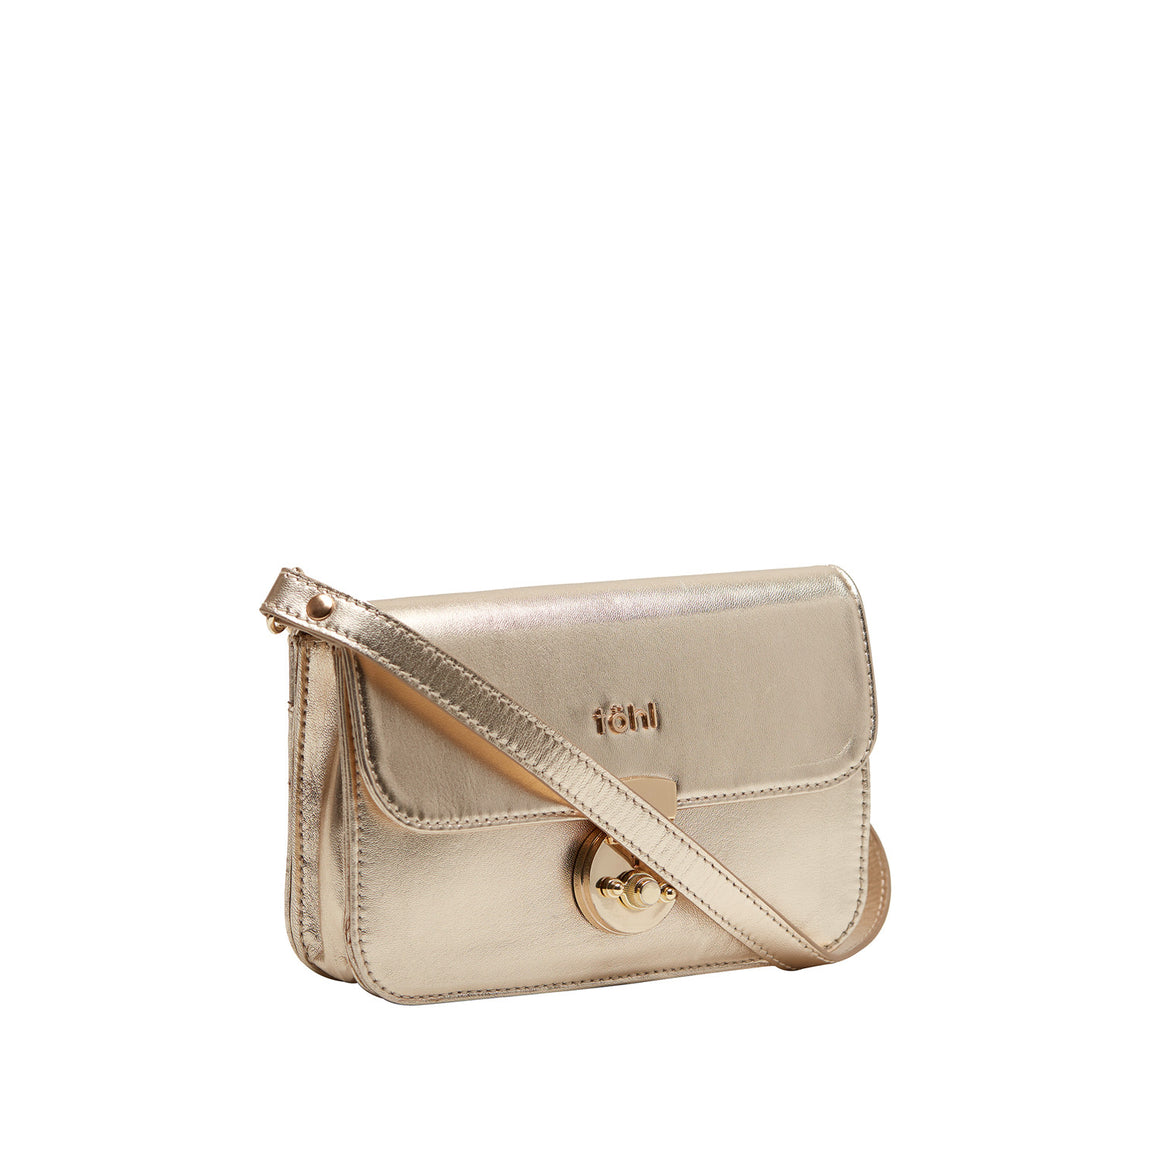 SG 0006 - TOHL ASTOR WOMEN'S FLAPOVER BAG - GOLD